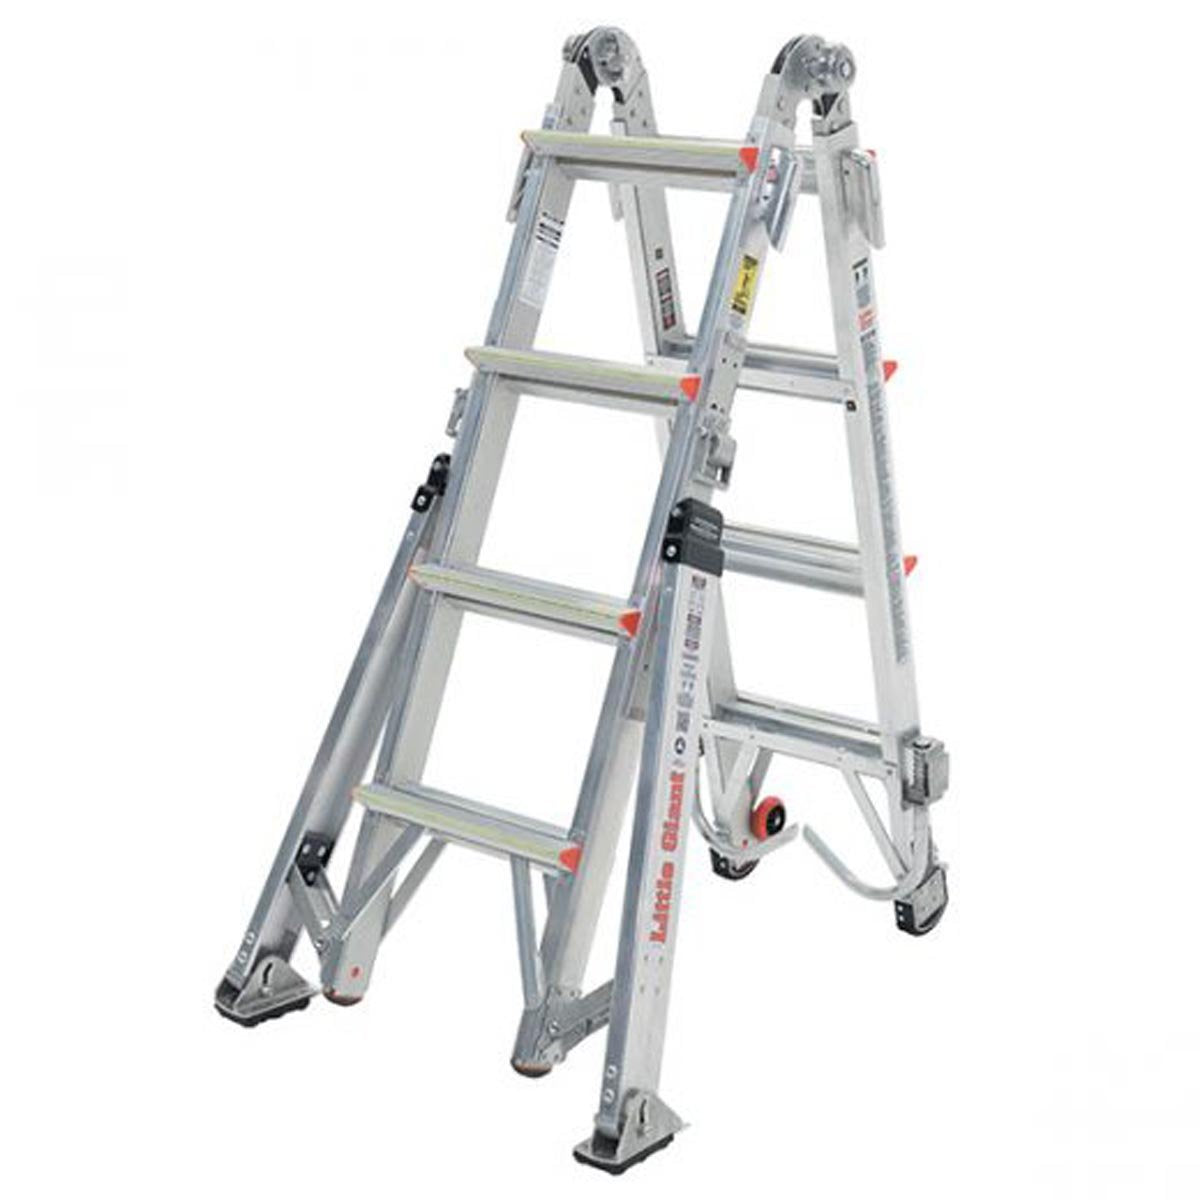 Little Giant Ladders Systems: Overhaul Ladder